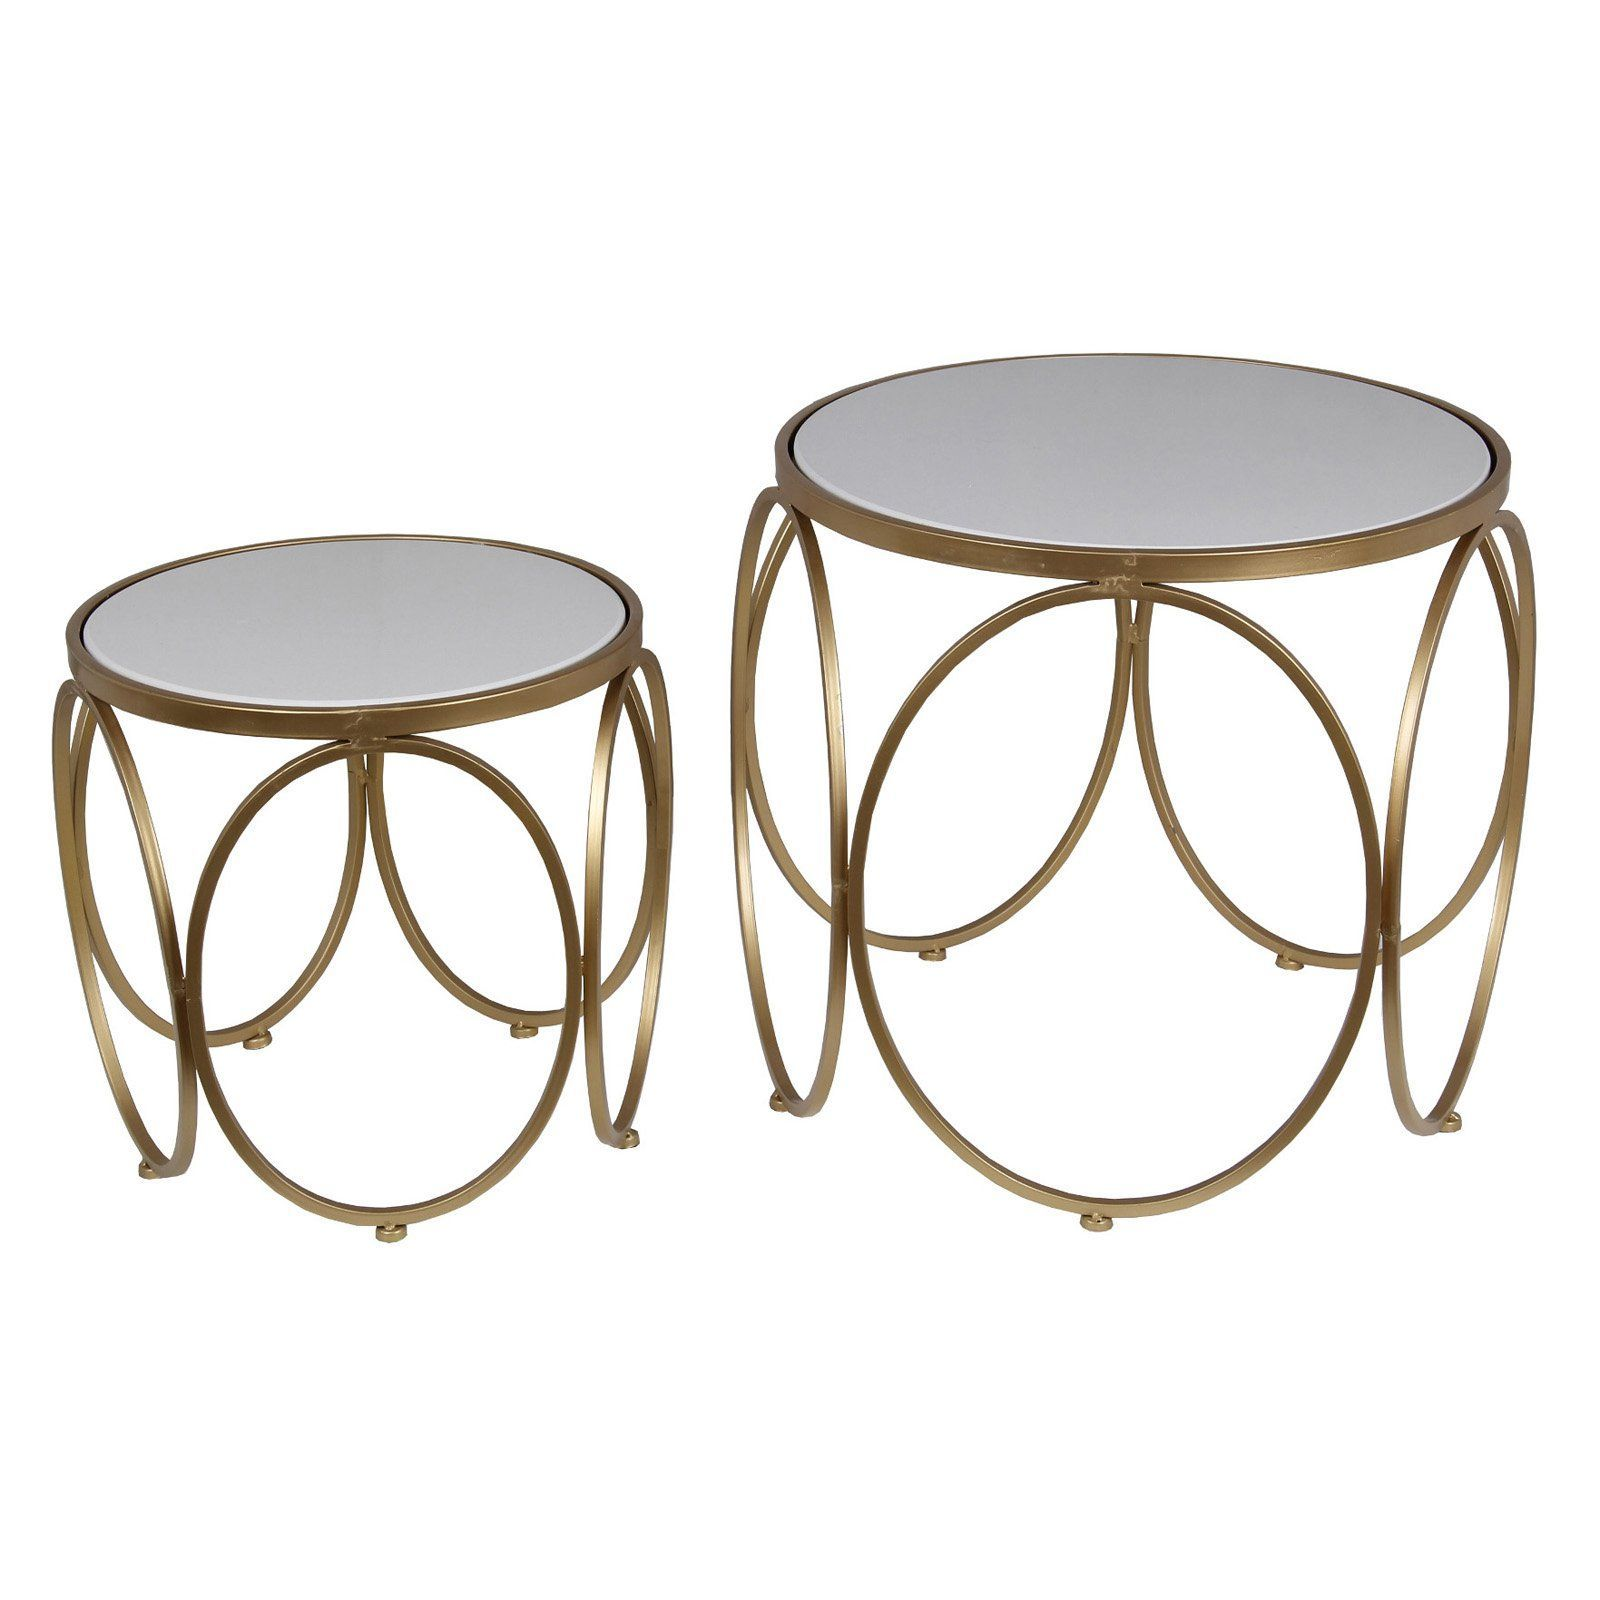 privilege international gold accent table set stone ikea small folding home furniture edmonton lamps for bedroom piece end tables metal drum timber trestle legs round occasional